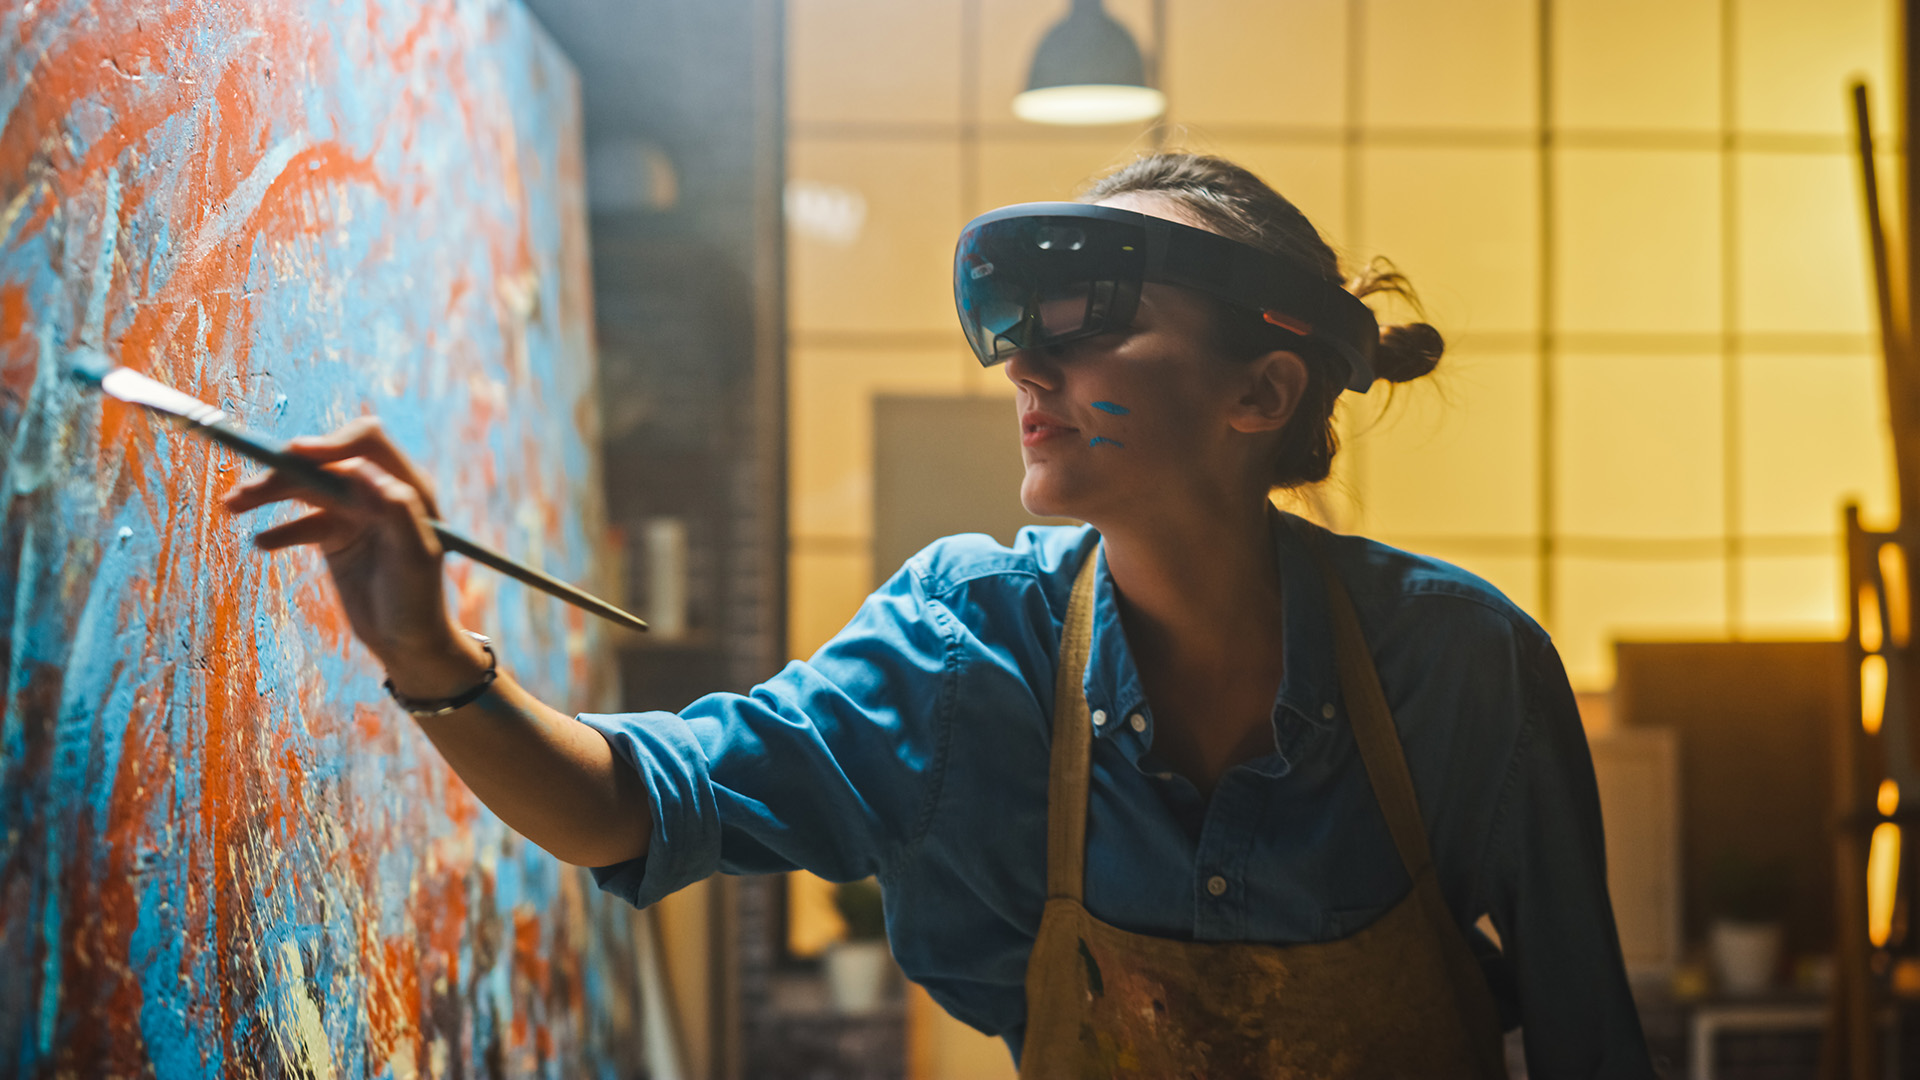 Talented Female Artist Wearing Augmented Reality Headset Working on Abstract Digital Painting, Uses Paint Brush To Create New Concept Art Using Virtual Reality Interface. High tech Creative Modern Studio